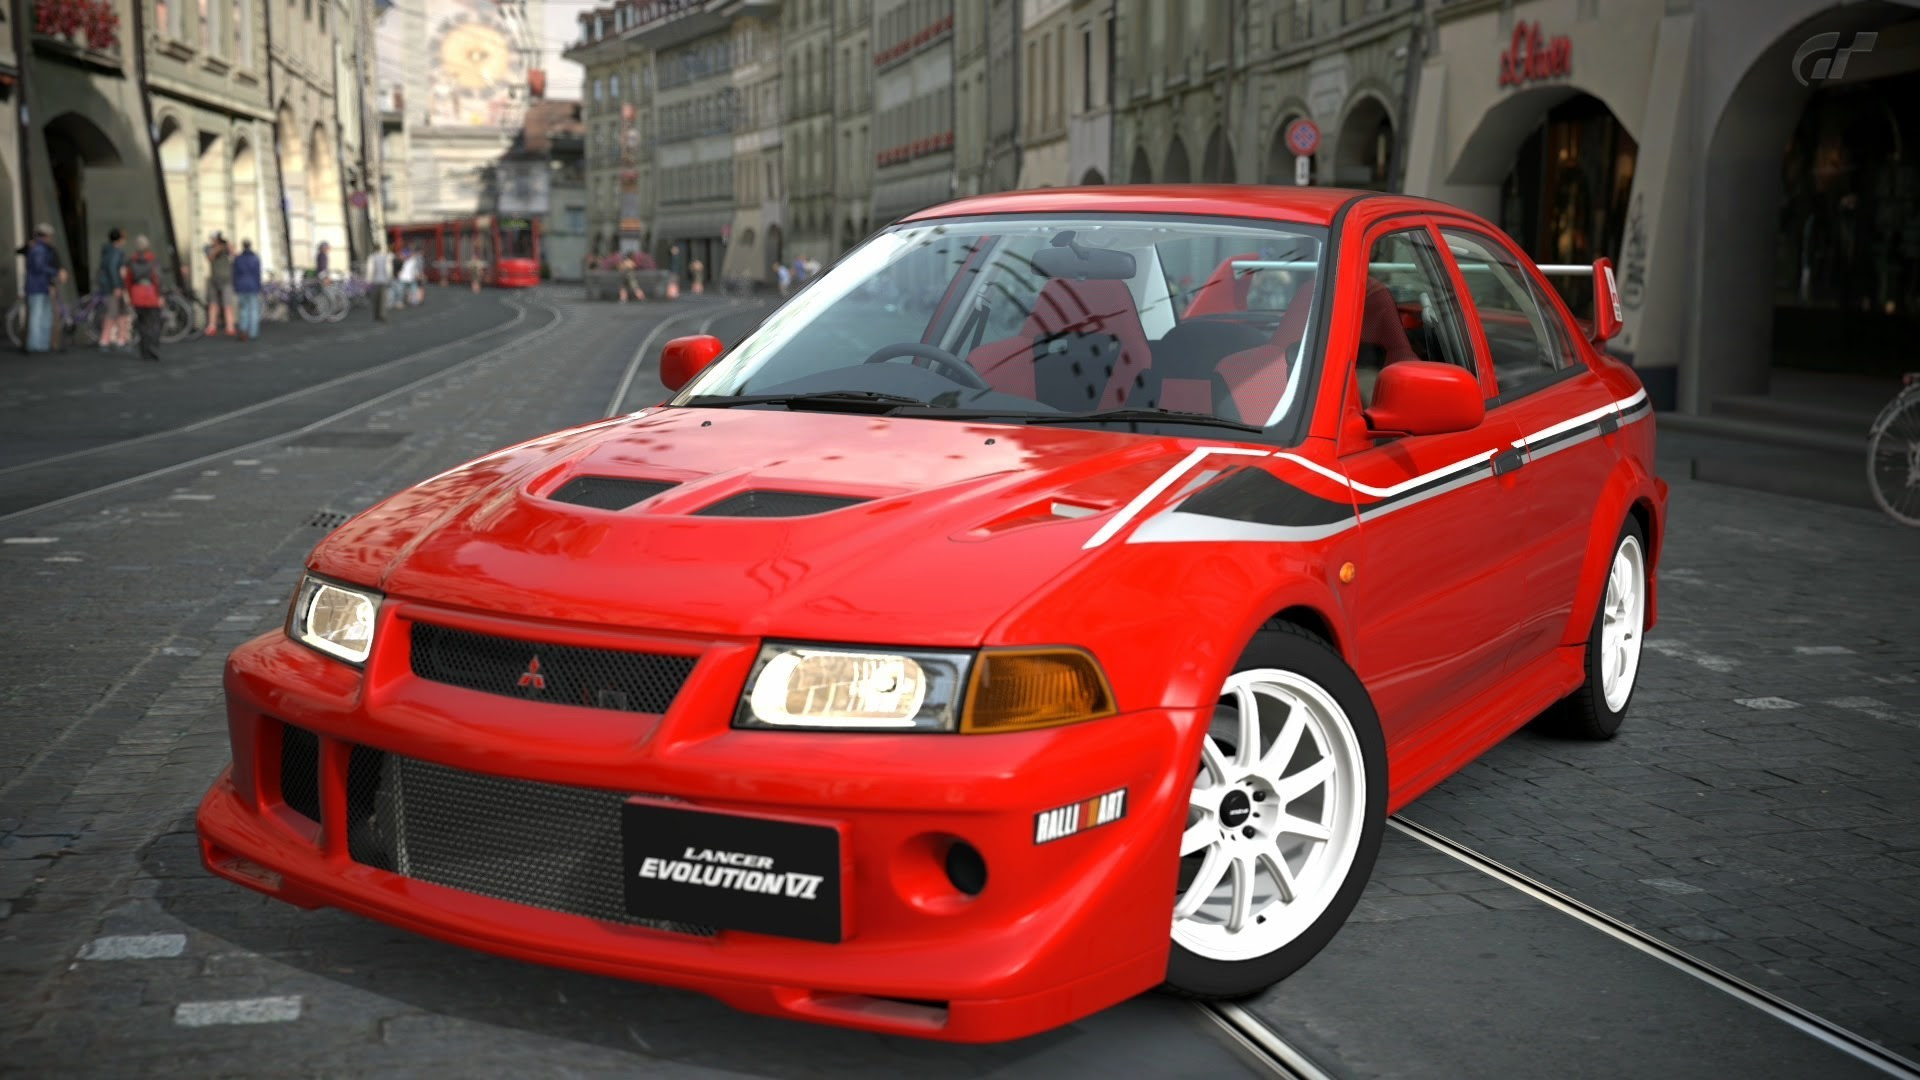 Mitsubishi Lancer Evolution HD Wallpaper1080p For Desktop